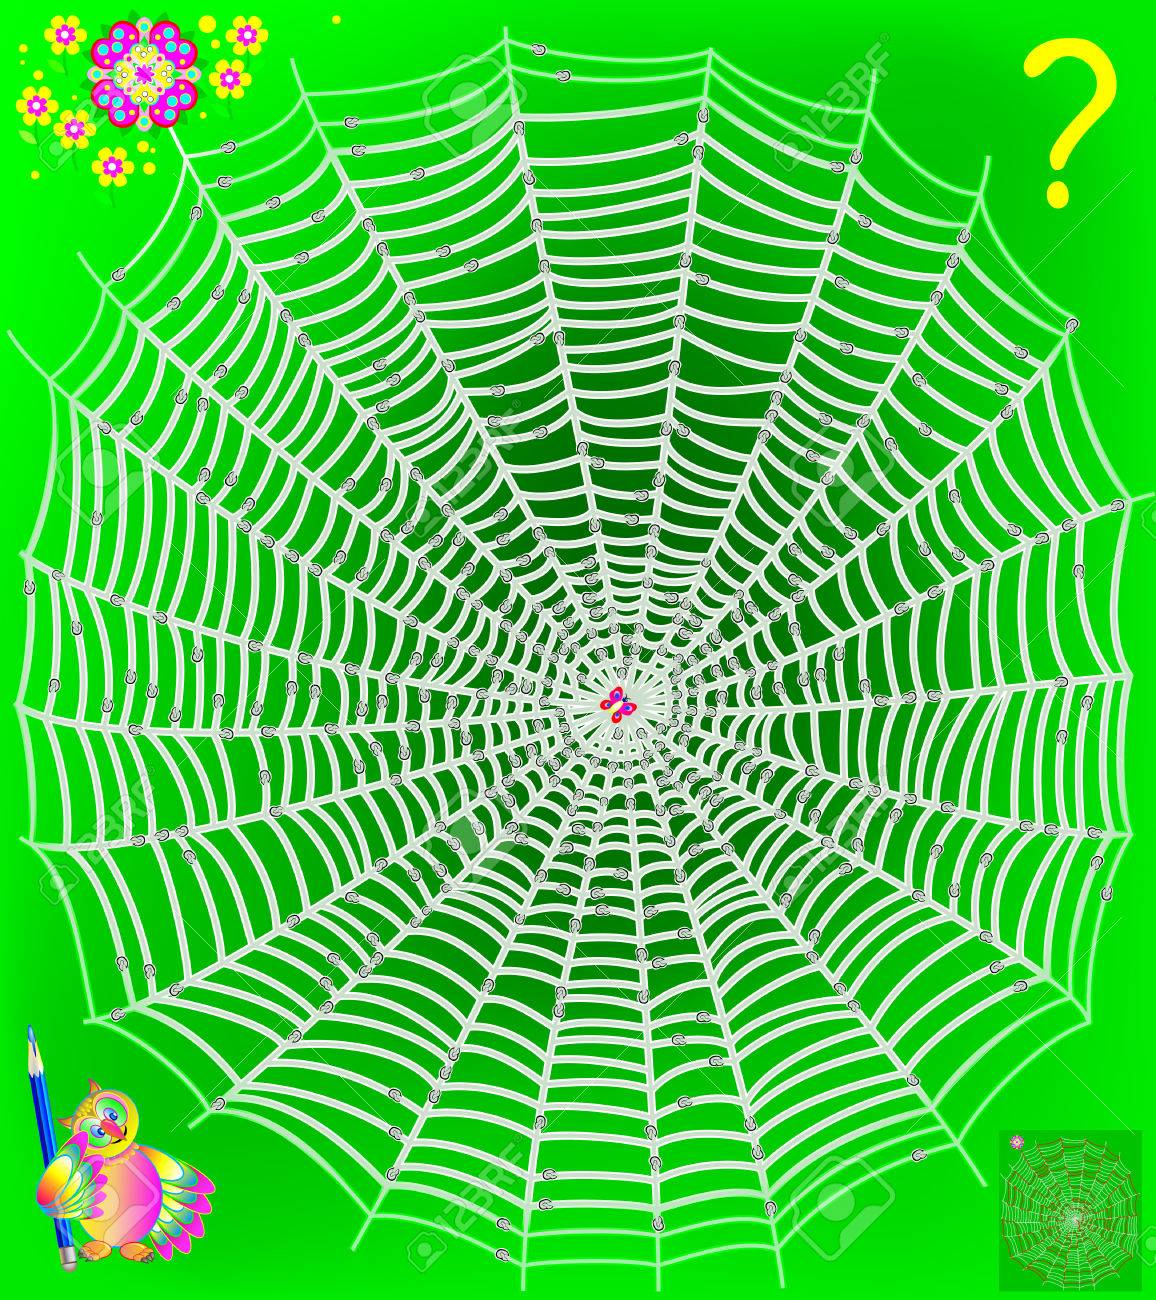 Logic puzzle game with labyrinth. Help the butterfly get out of the web. Need to draw the way till the flower. It is forbidden to cross the nodes. - 75324267